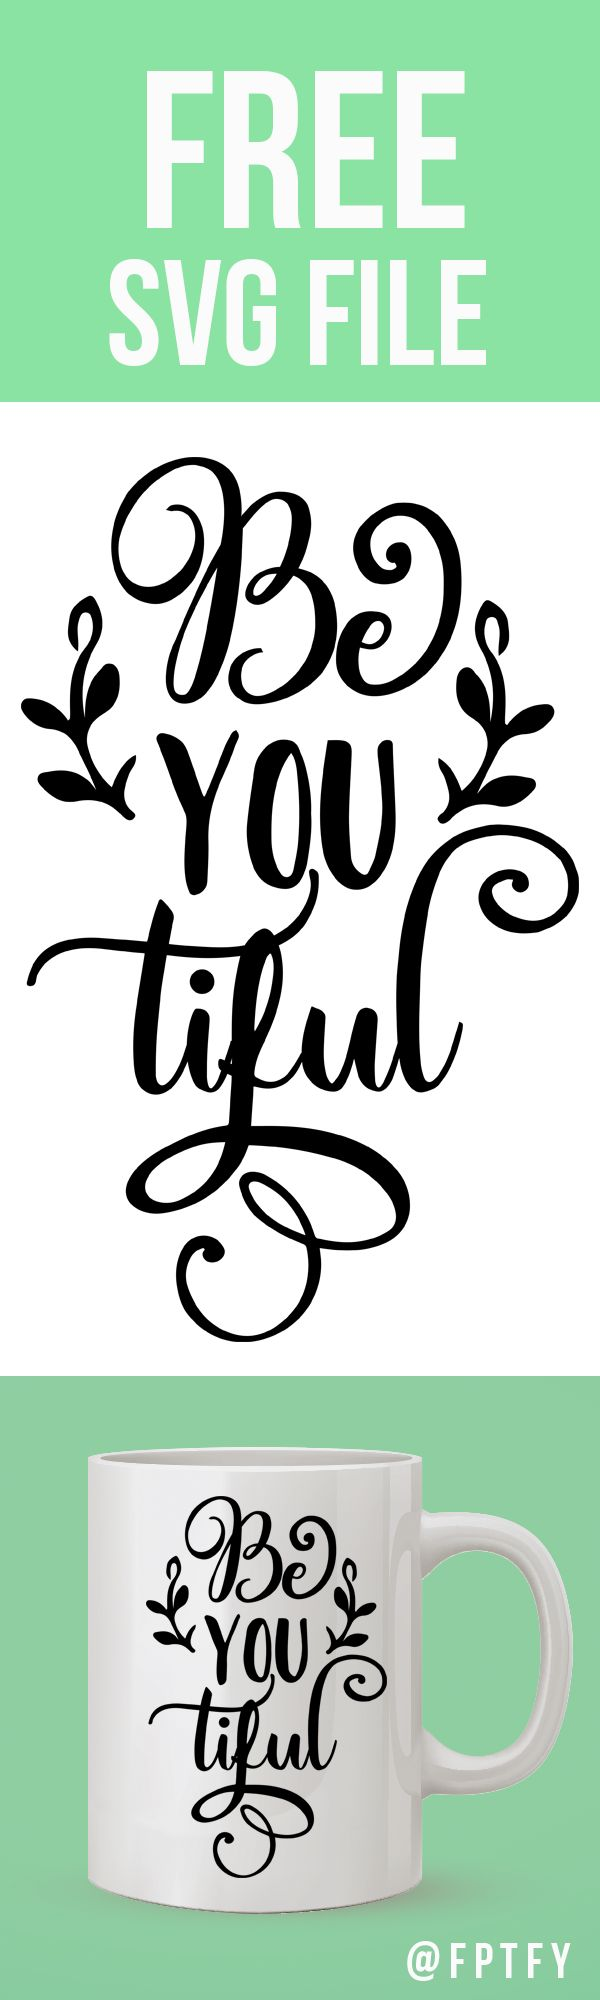 Free Be-YOU-tiful Cut File: A Be-YOU-tiful free cut file is now ready for you to download! Create lovely pieces that will inspire all who receive them! To download click the following: • PNG • SVG File • JPEG Be Sure To Subscribe To Receive Exclusive Freebies and Post! :) Enjoy! …………………………………………………………………………………………………………………… Have not I commanded thee?...Read More »